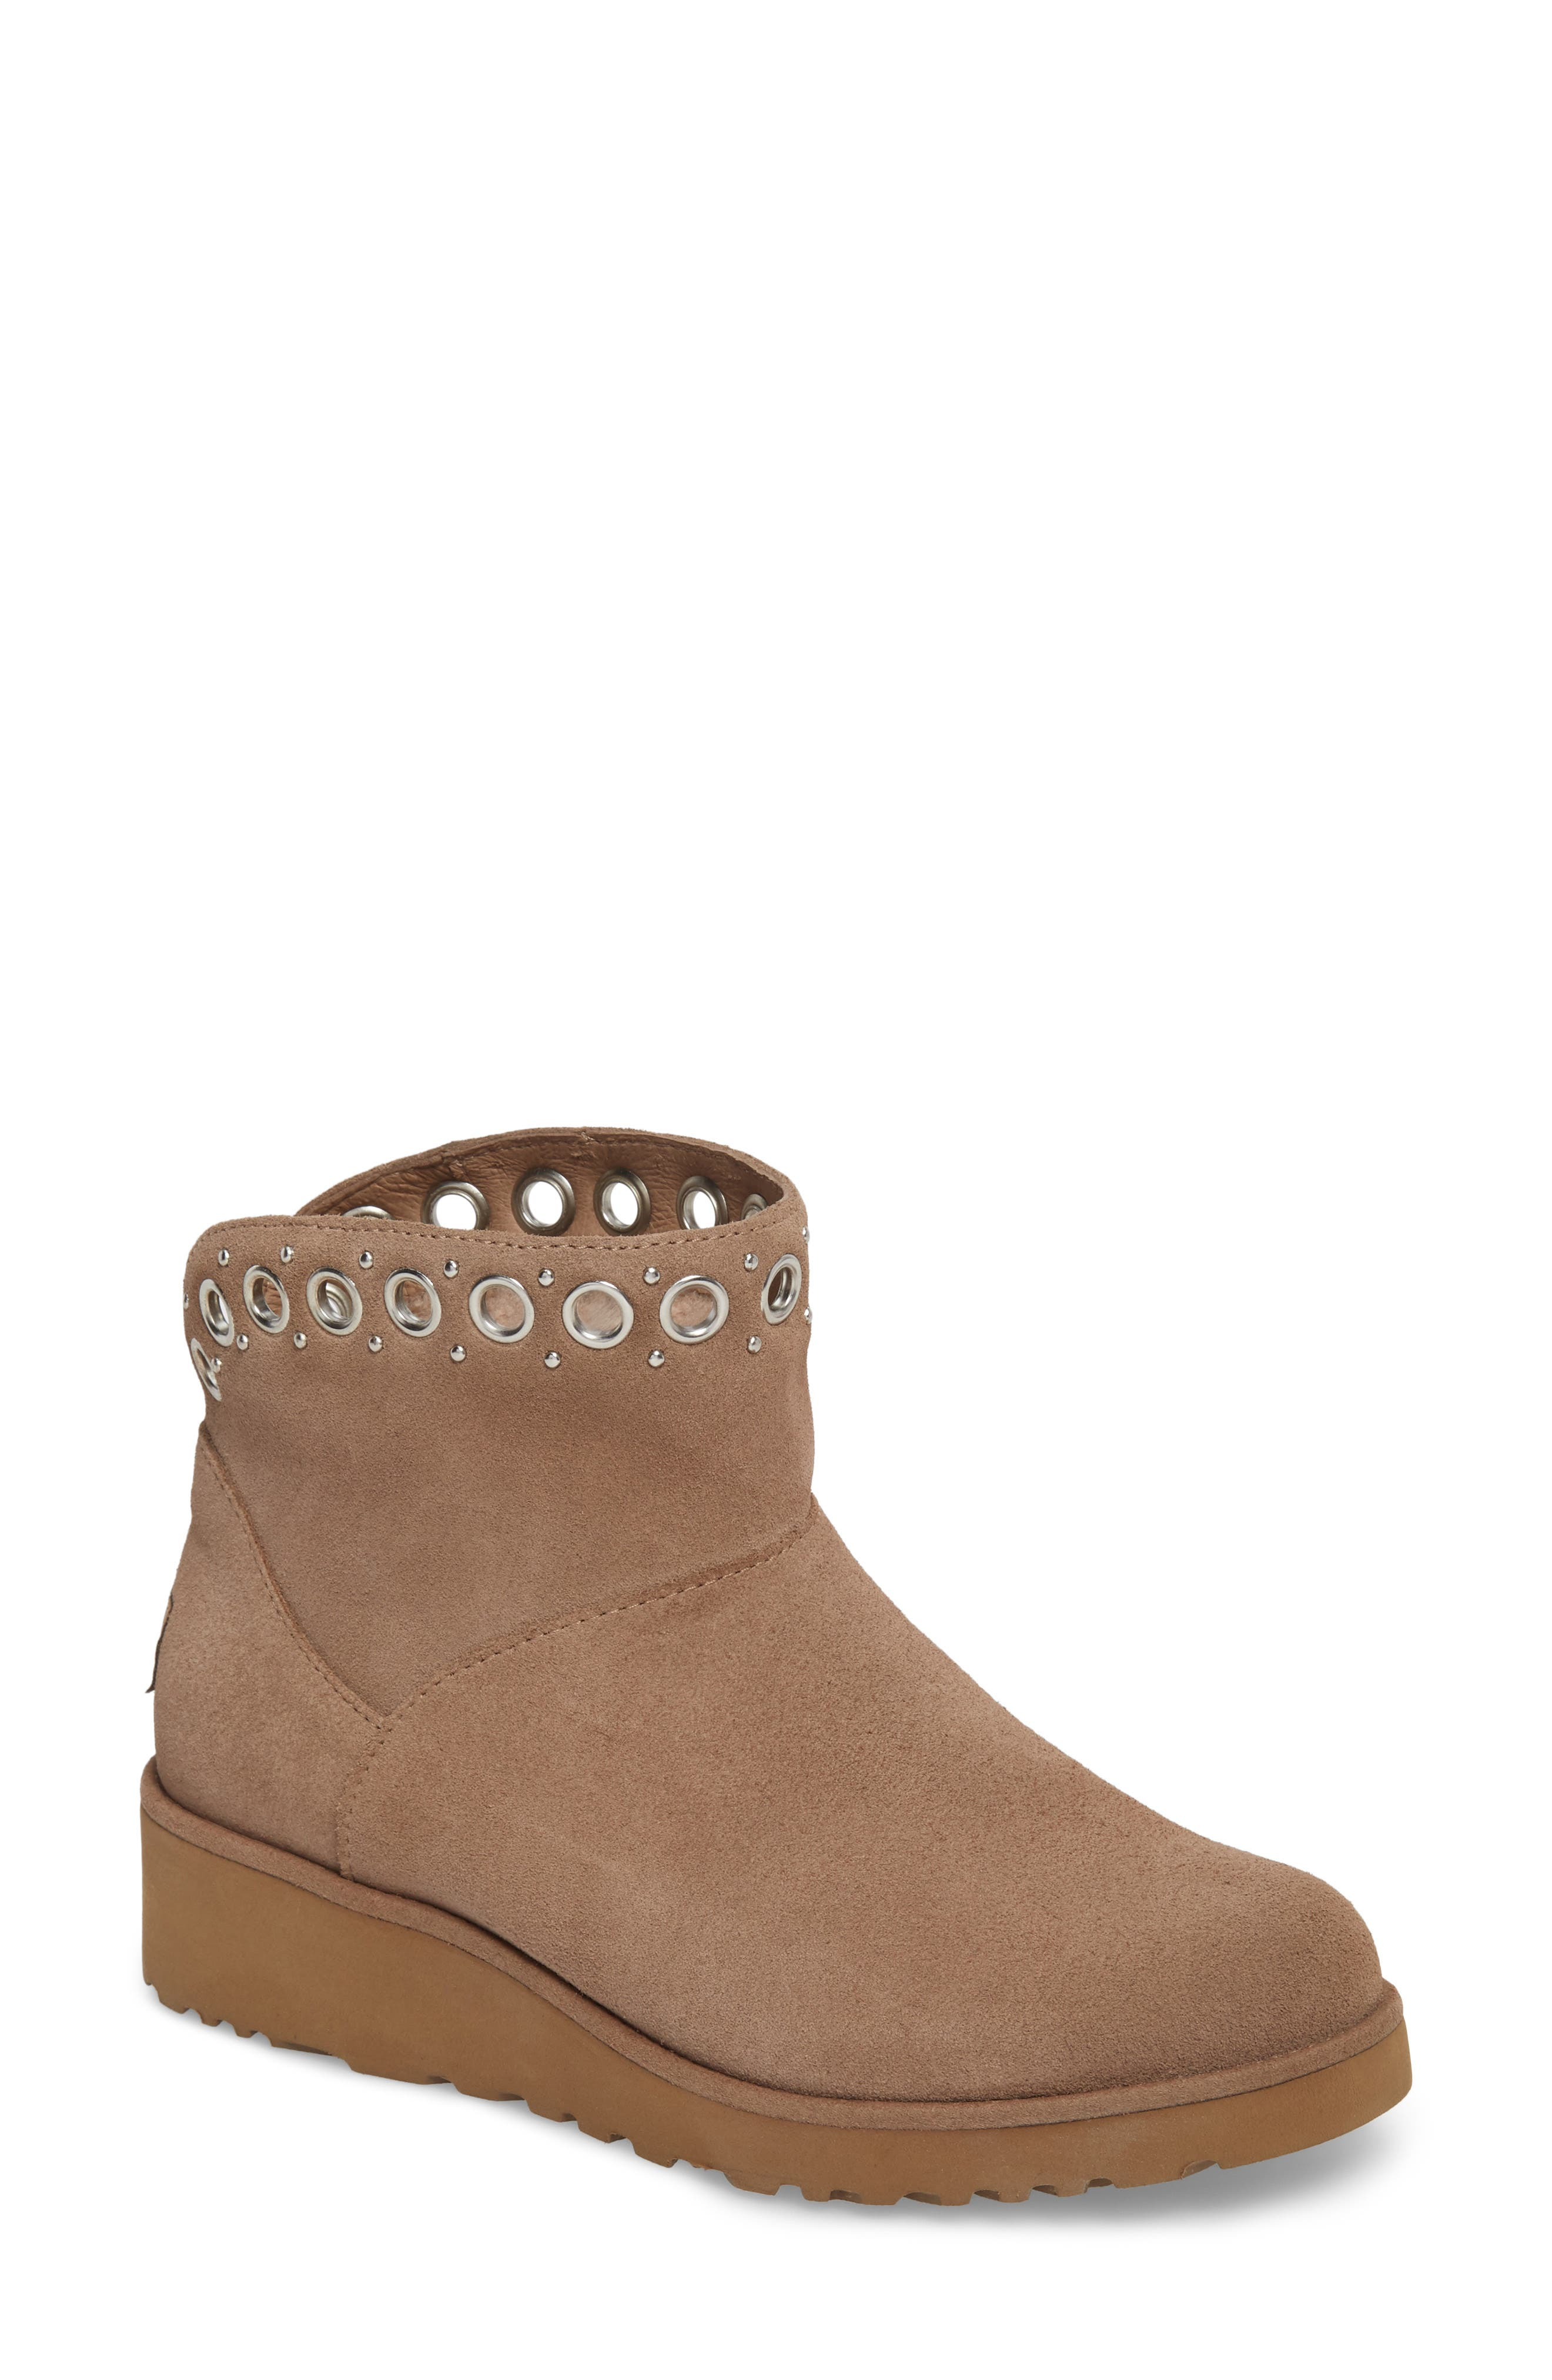 Riley Grommet Wedge Boot,                             Main thumbnail 3, color,